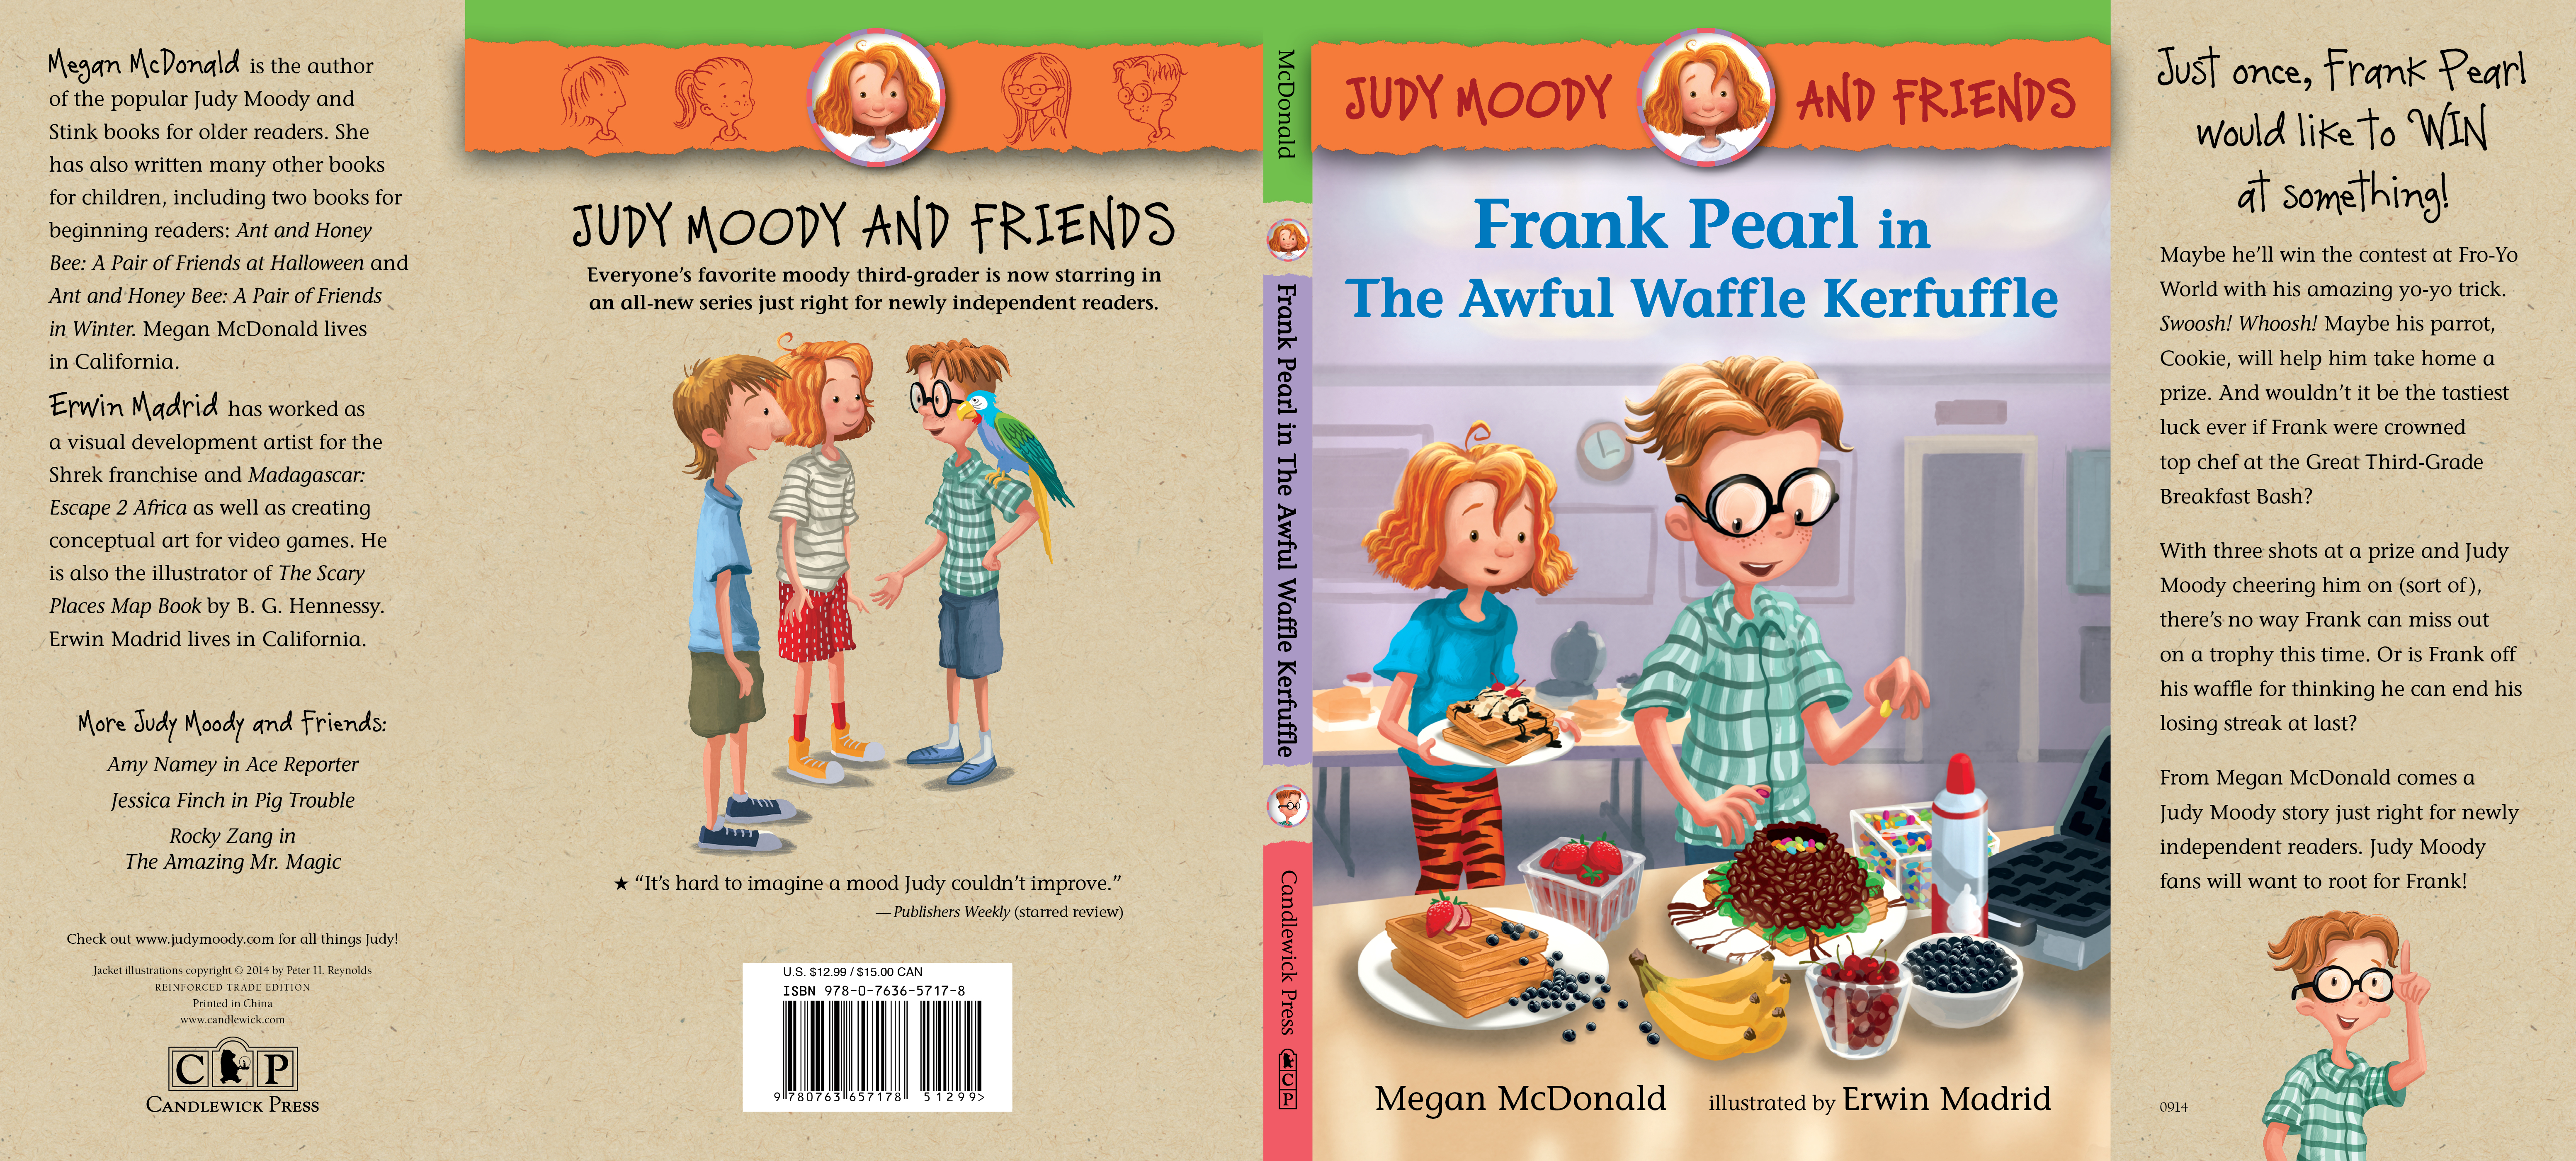 Full jacket for FRANK PEARL IN THE AWFUL WAFFLE KERFUFFLE